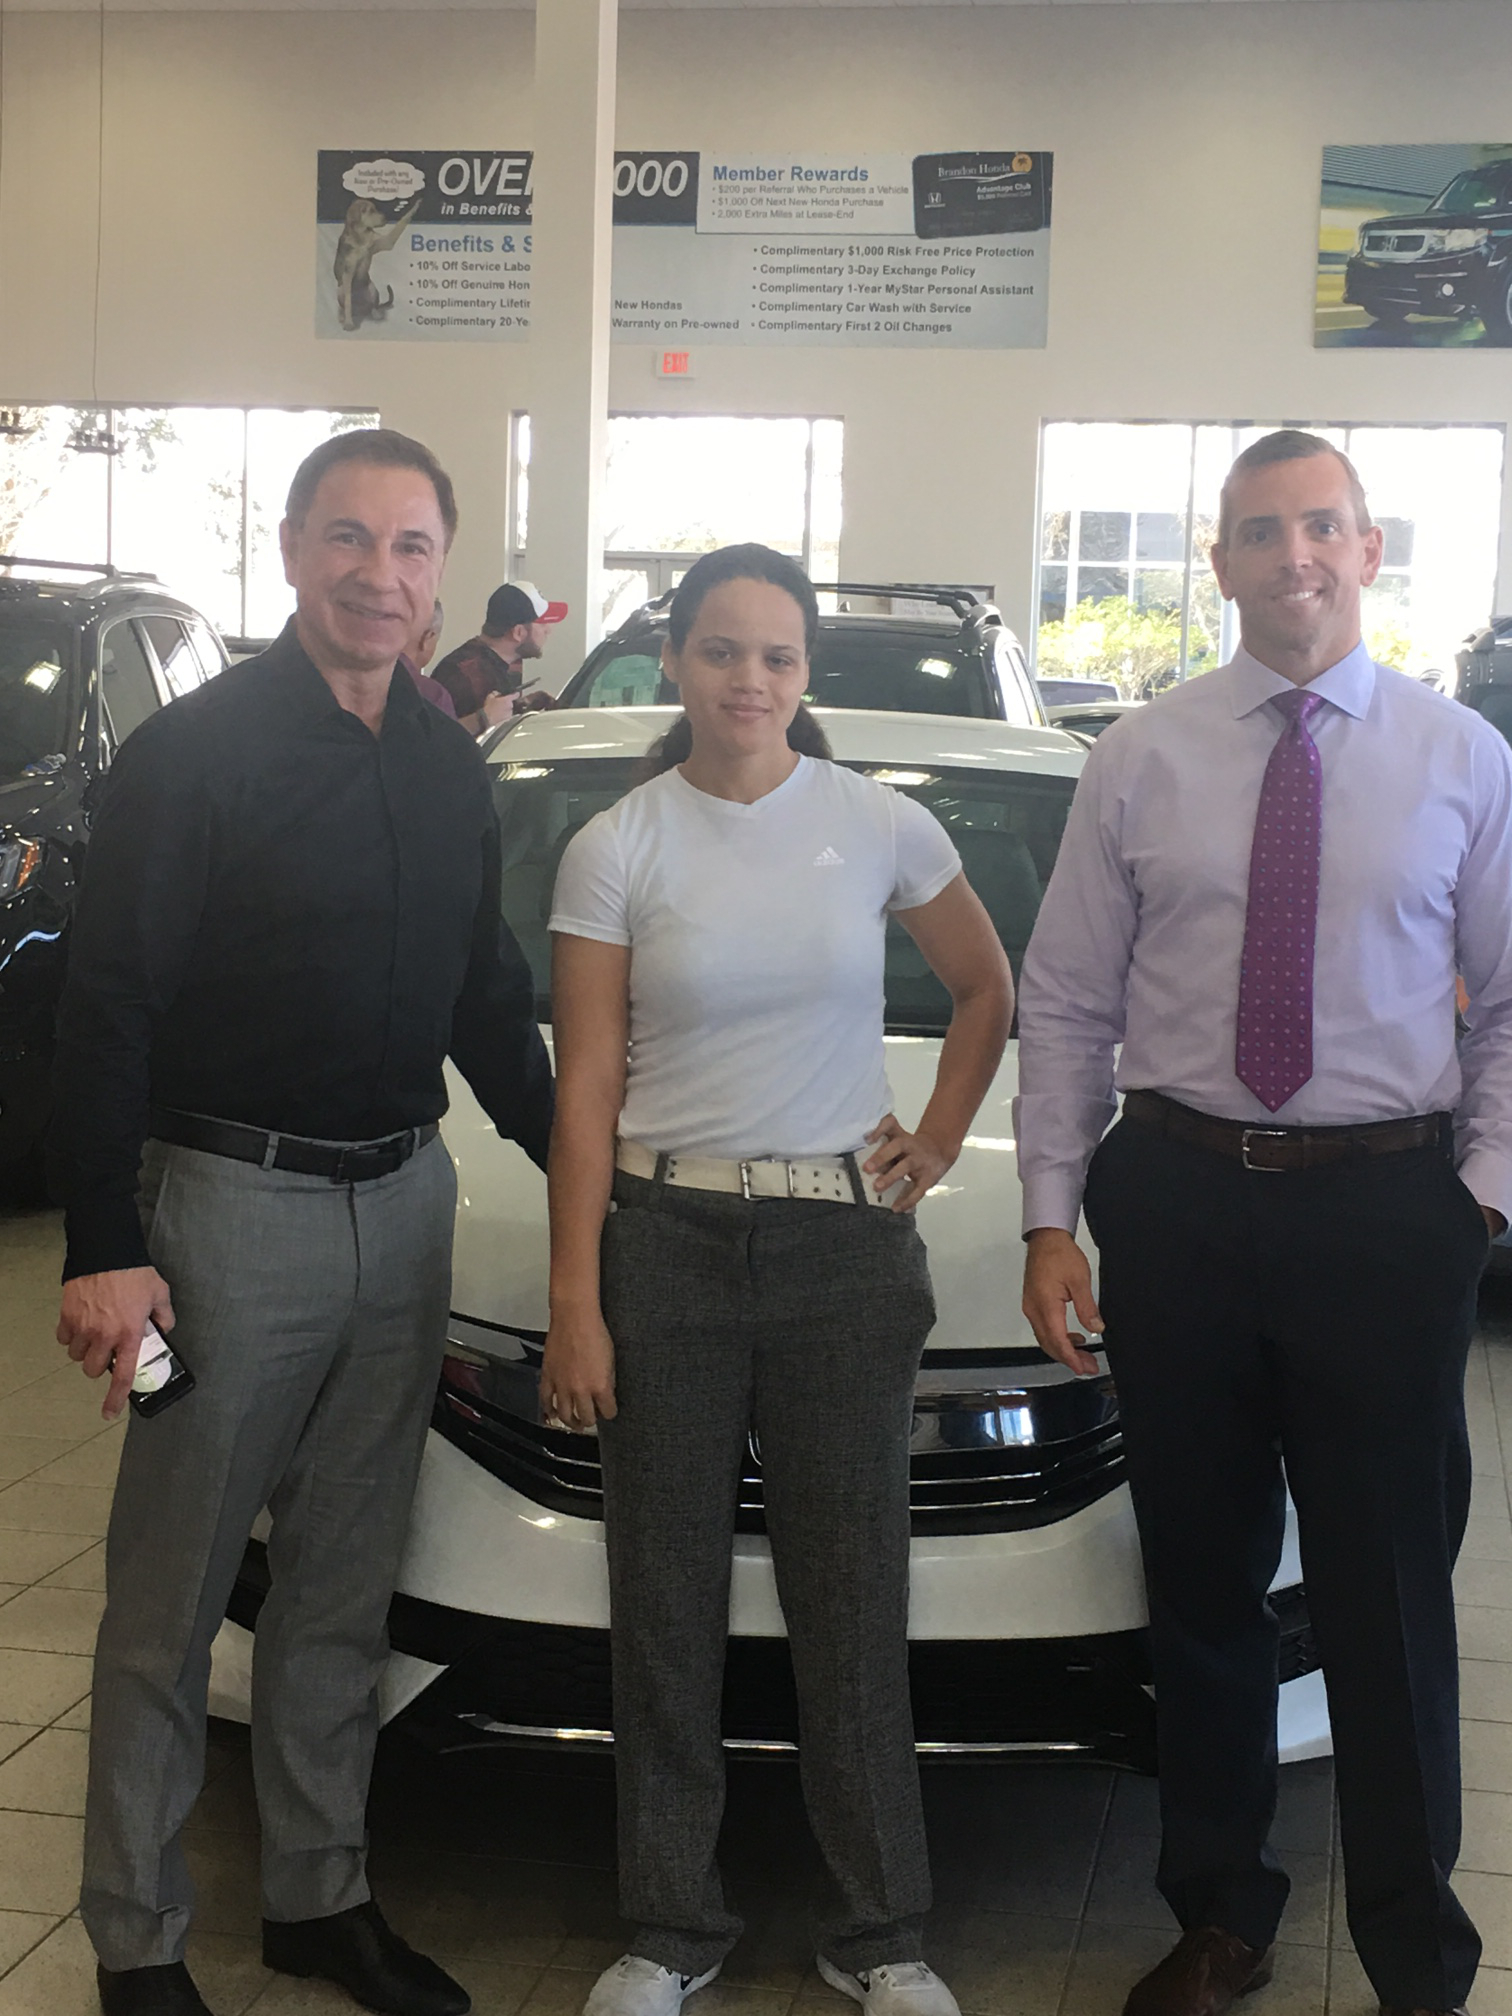 John Marazzi (L) and Sam Raabe (R) congratulate Alexis R. for winning the new 2017 Honda Accord